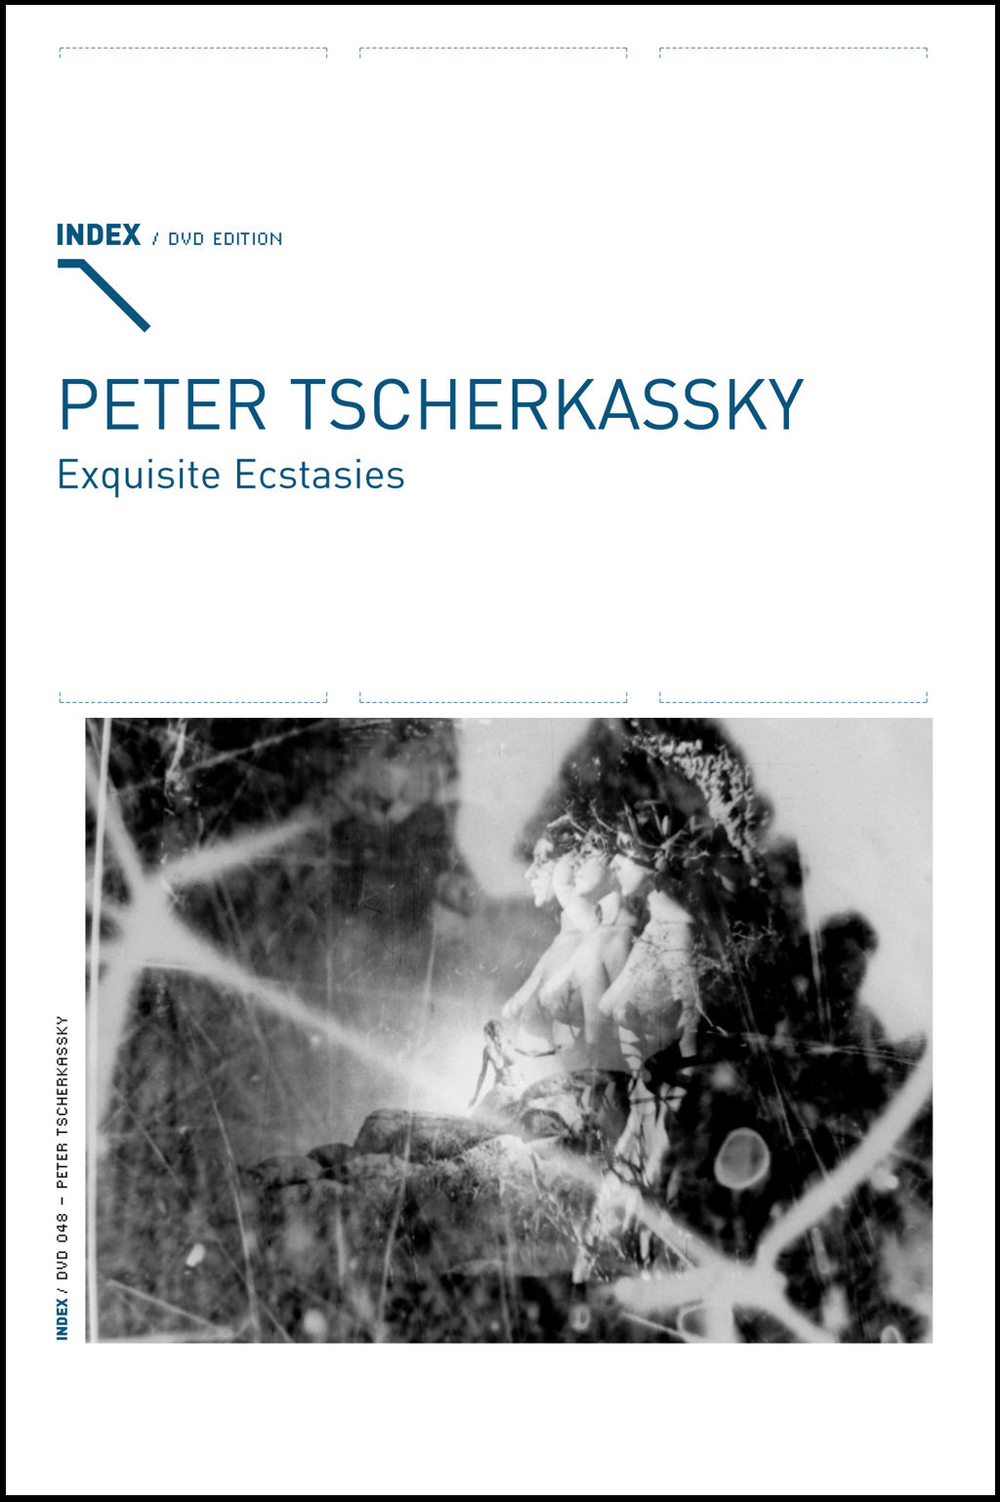 PETER TSCHERKASSKY- EXQUISITE ECSTASIES Booklet_Cover LG w border.png